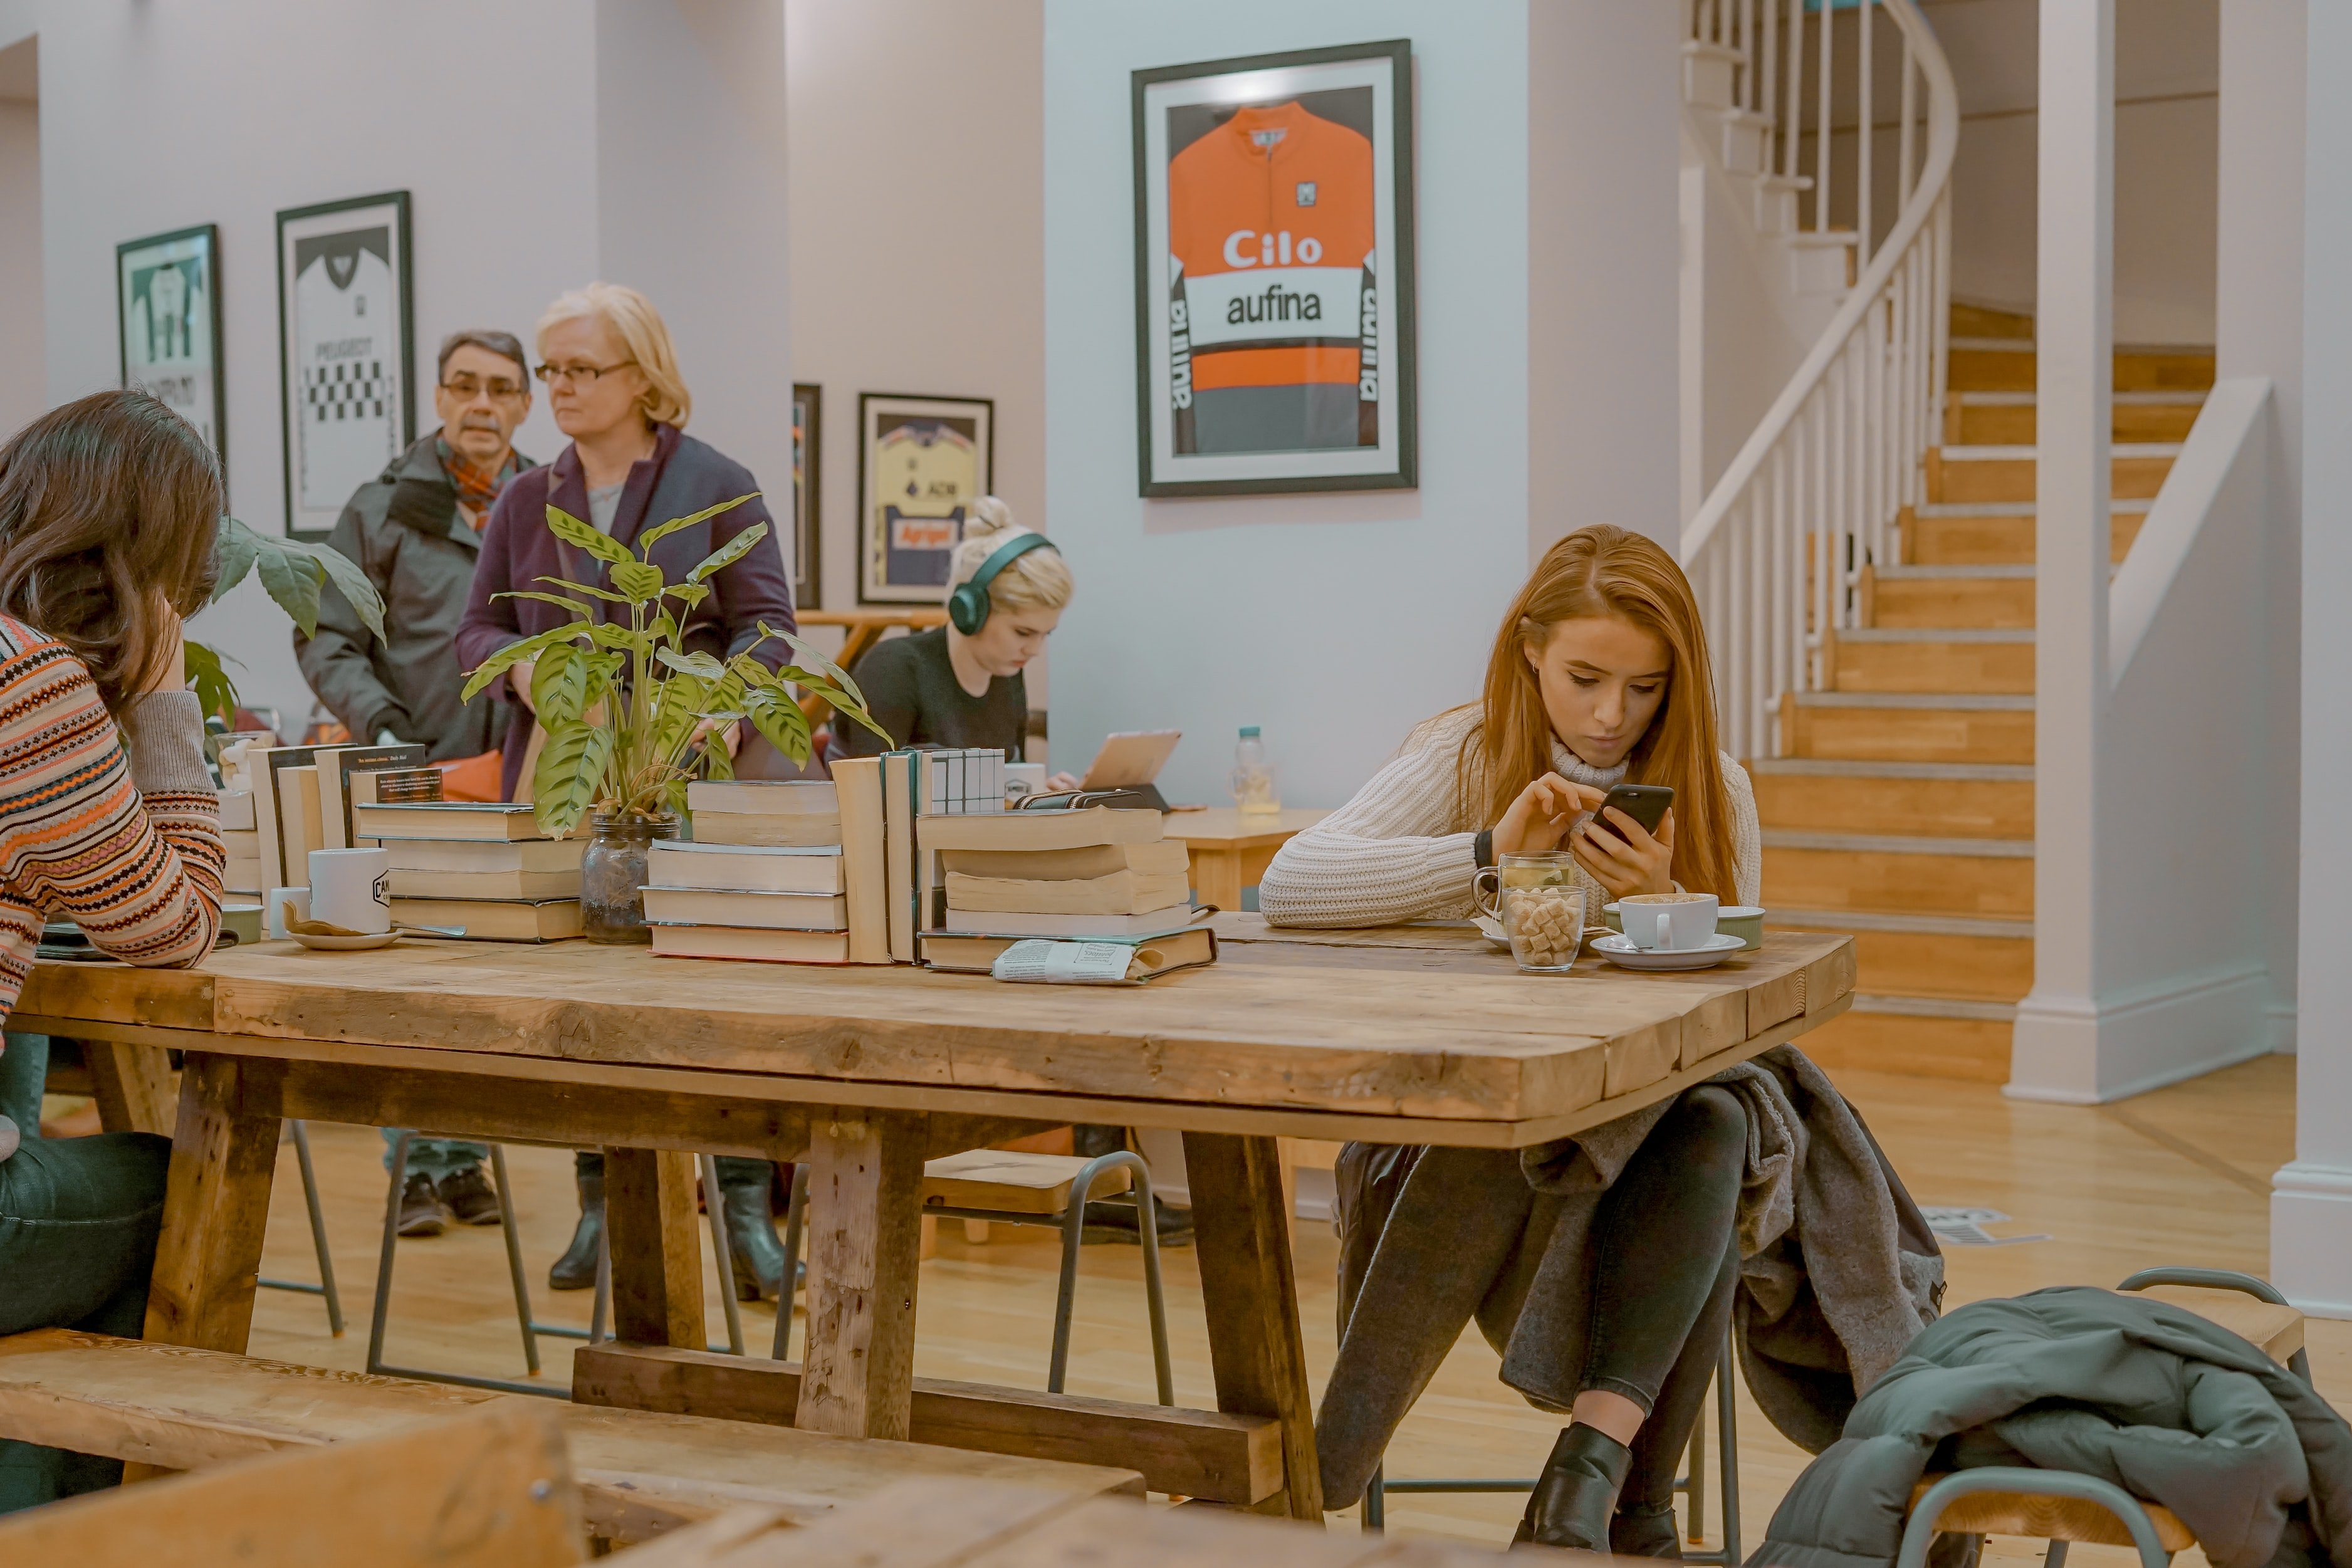 woman sitting on chair near table holding smartphone surrounded with people inside house